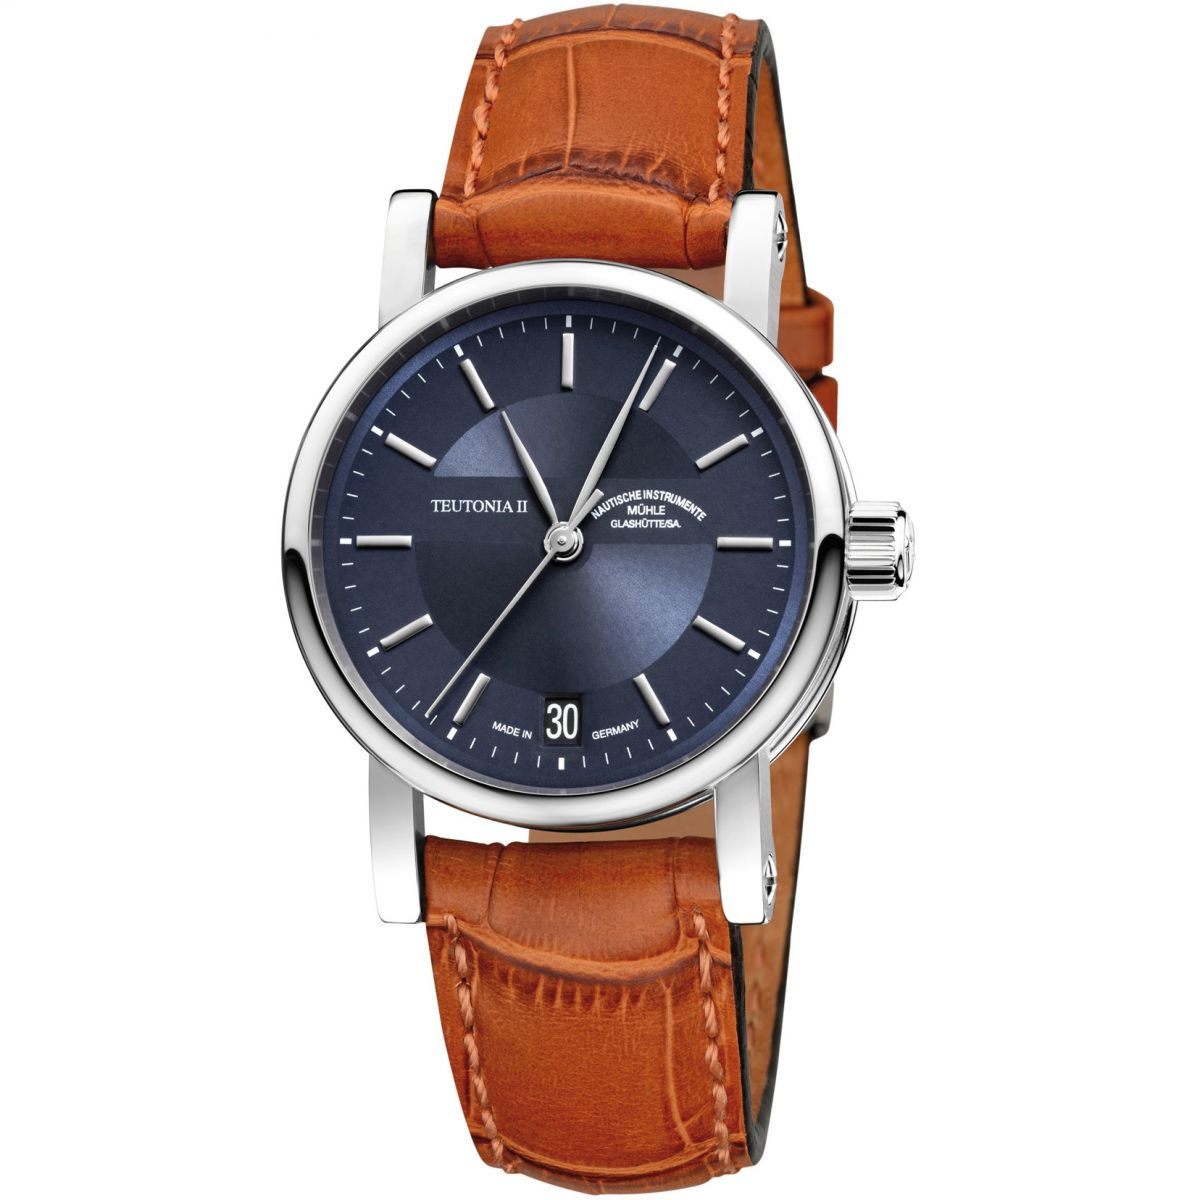 Gents muhle glashutte teutonia ii medium watch m1 30 22 lb for Muhle watches